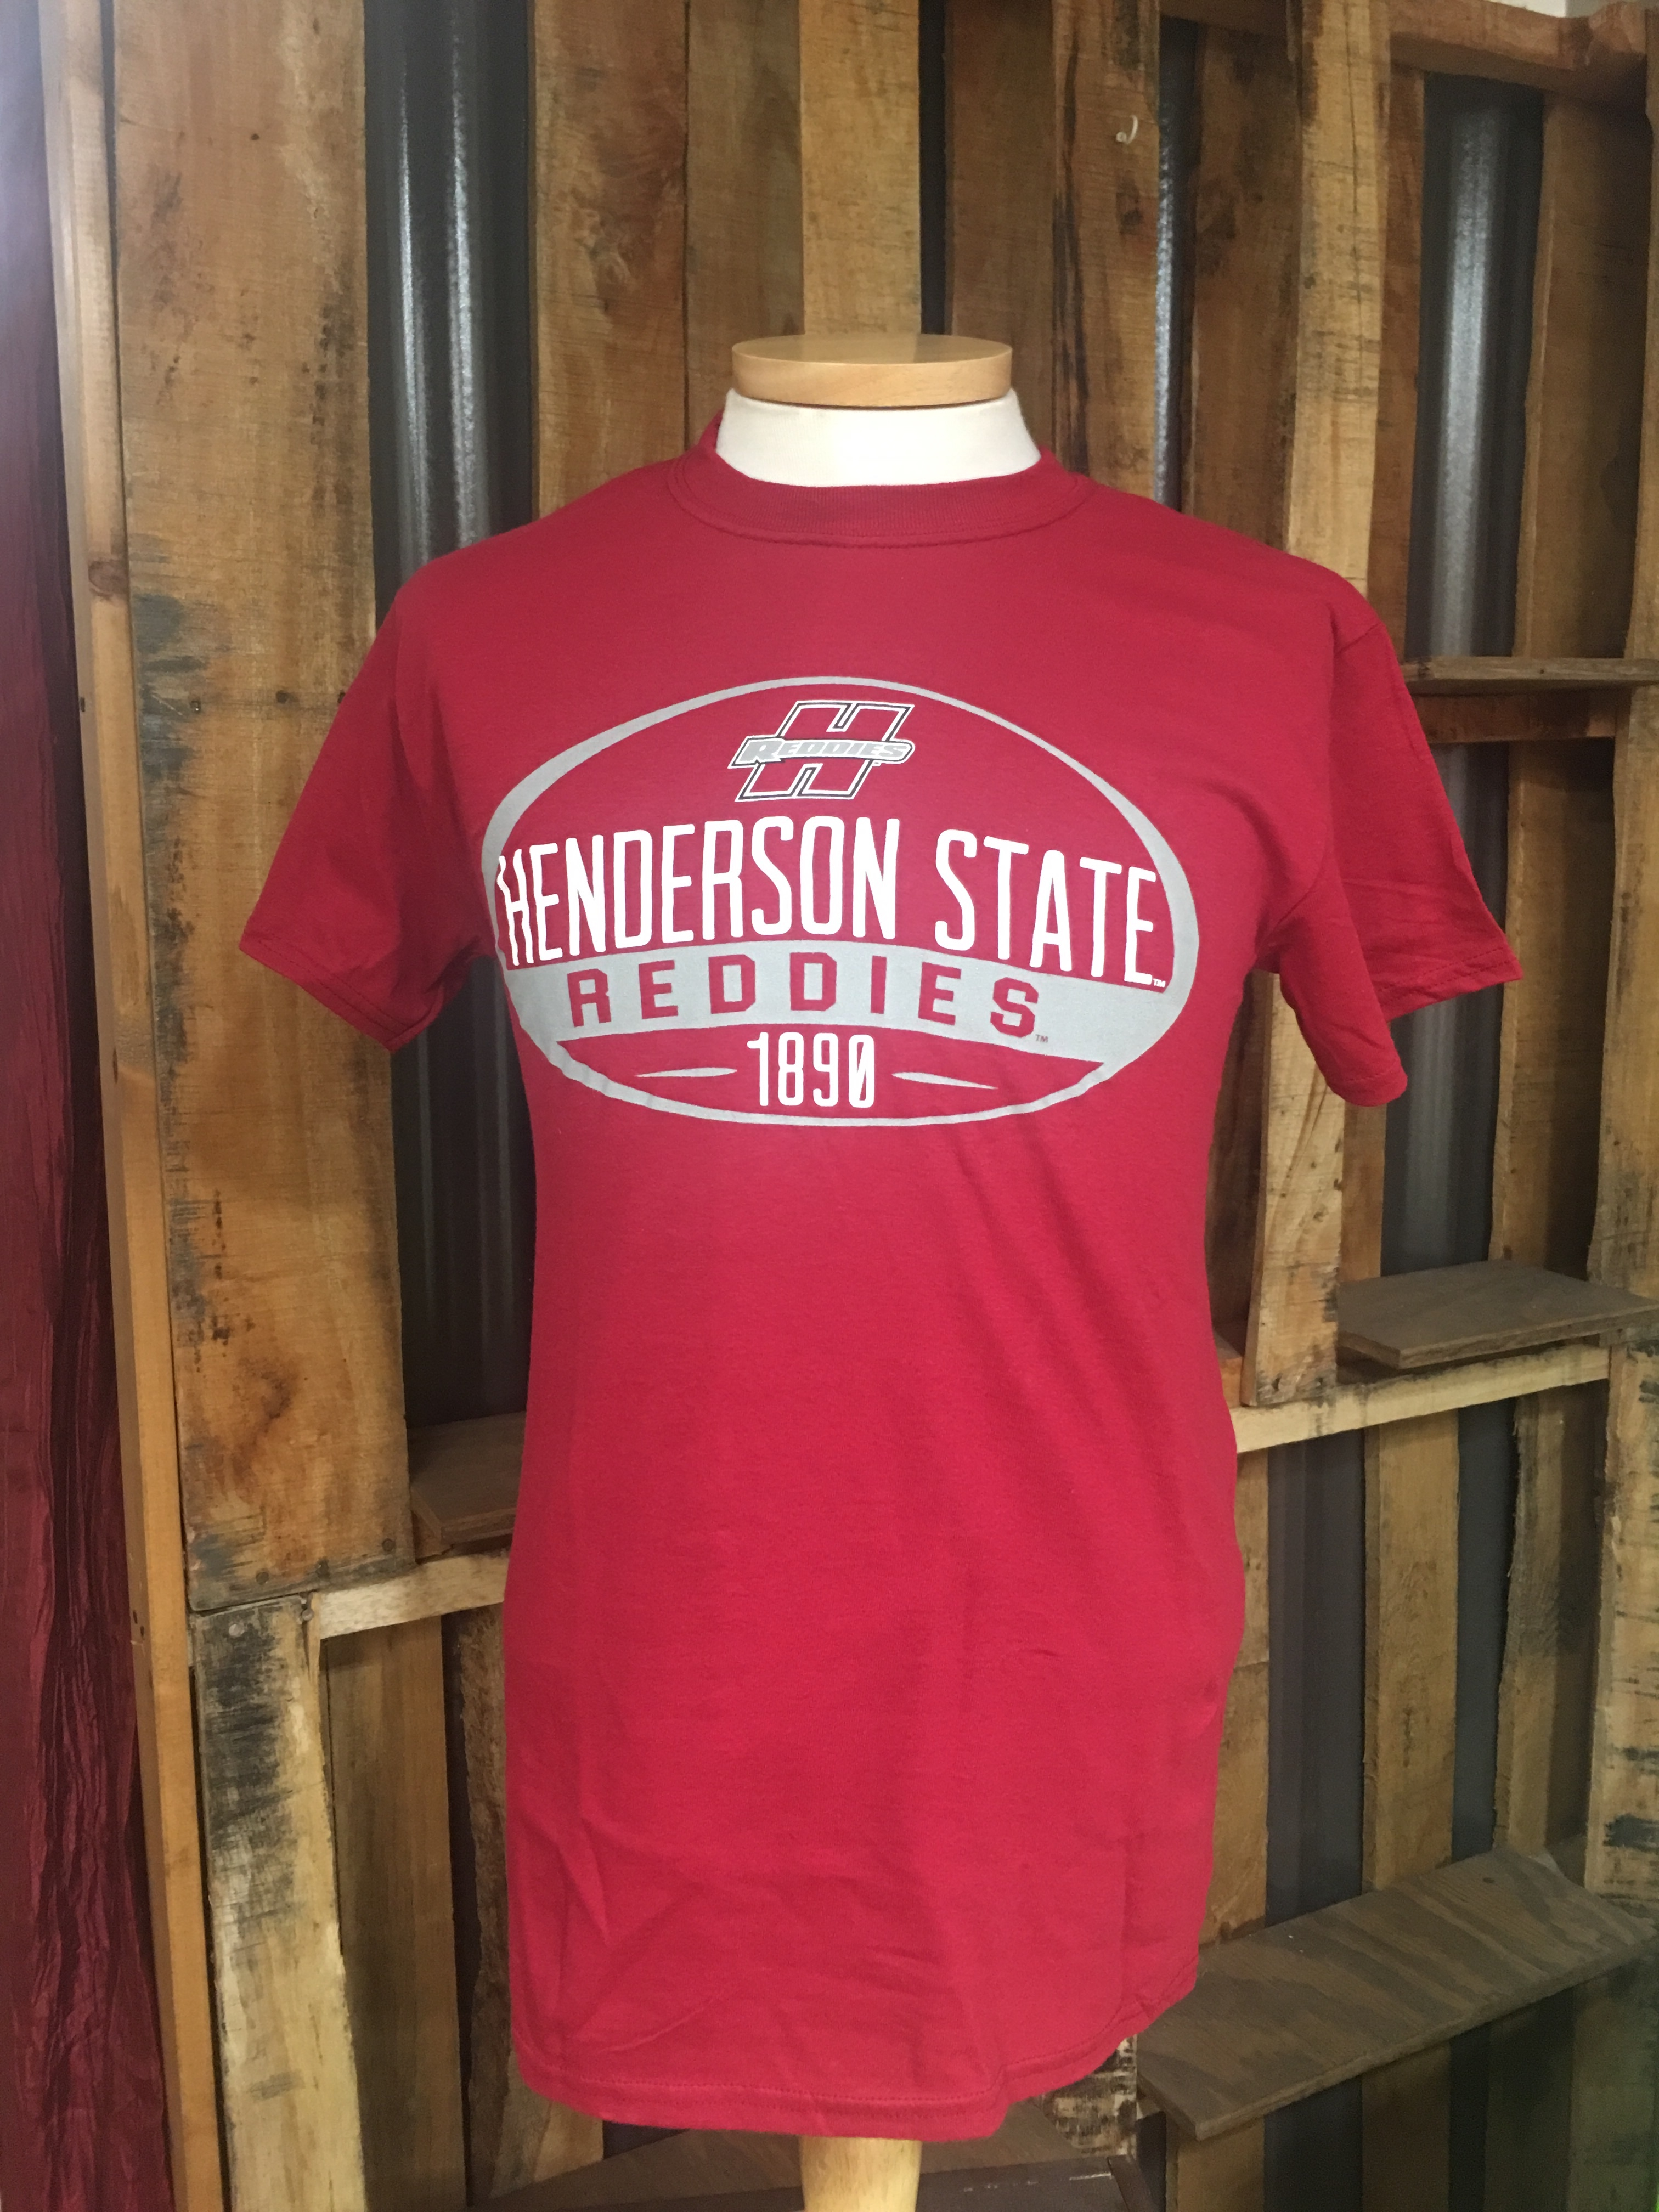 Henderson State Reddies 1890 Short Sleeve T-Shirt